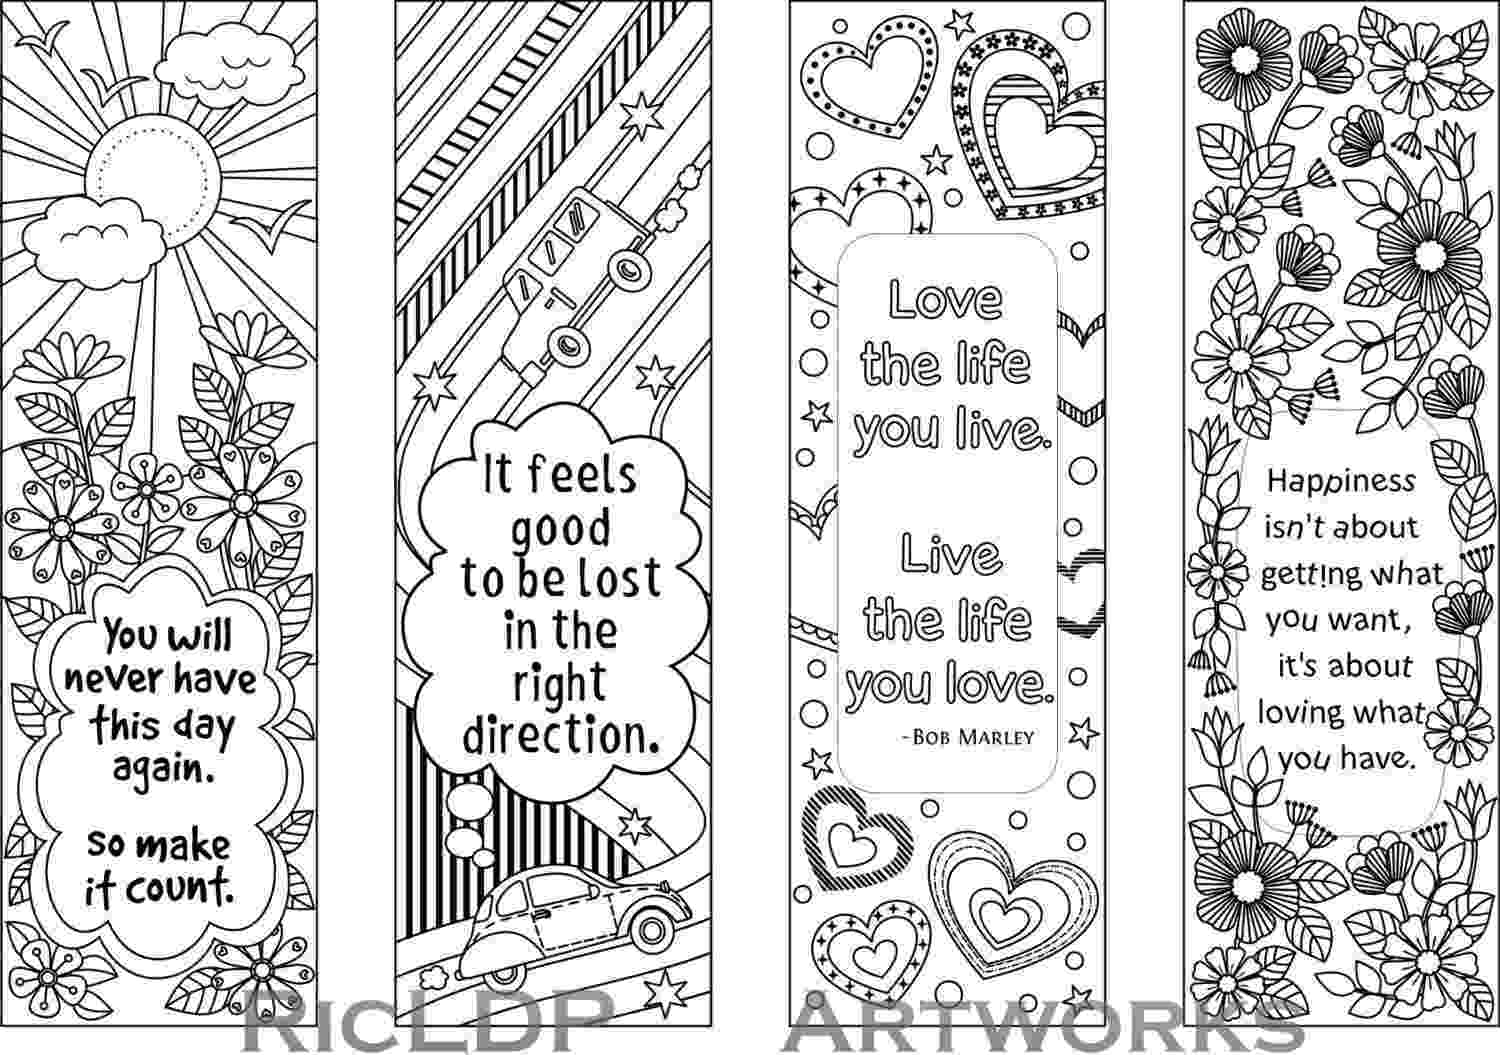 bookmarks coloring sheets 8 coloring bookmarks with quotes on books and reading coloring sheets bookmarks